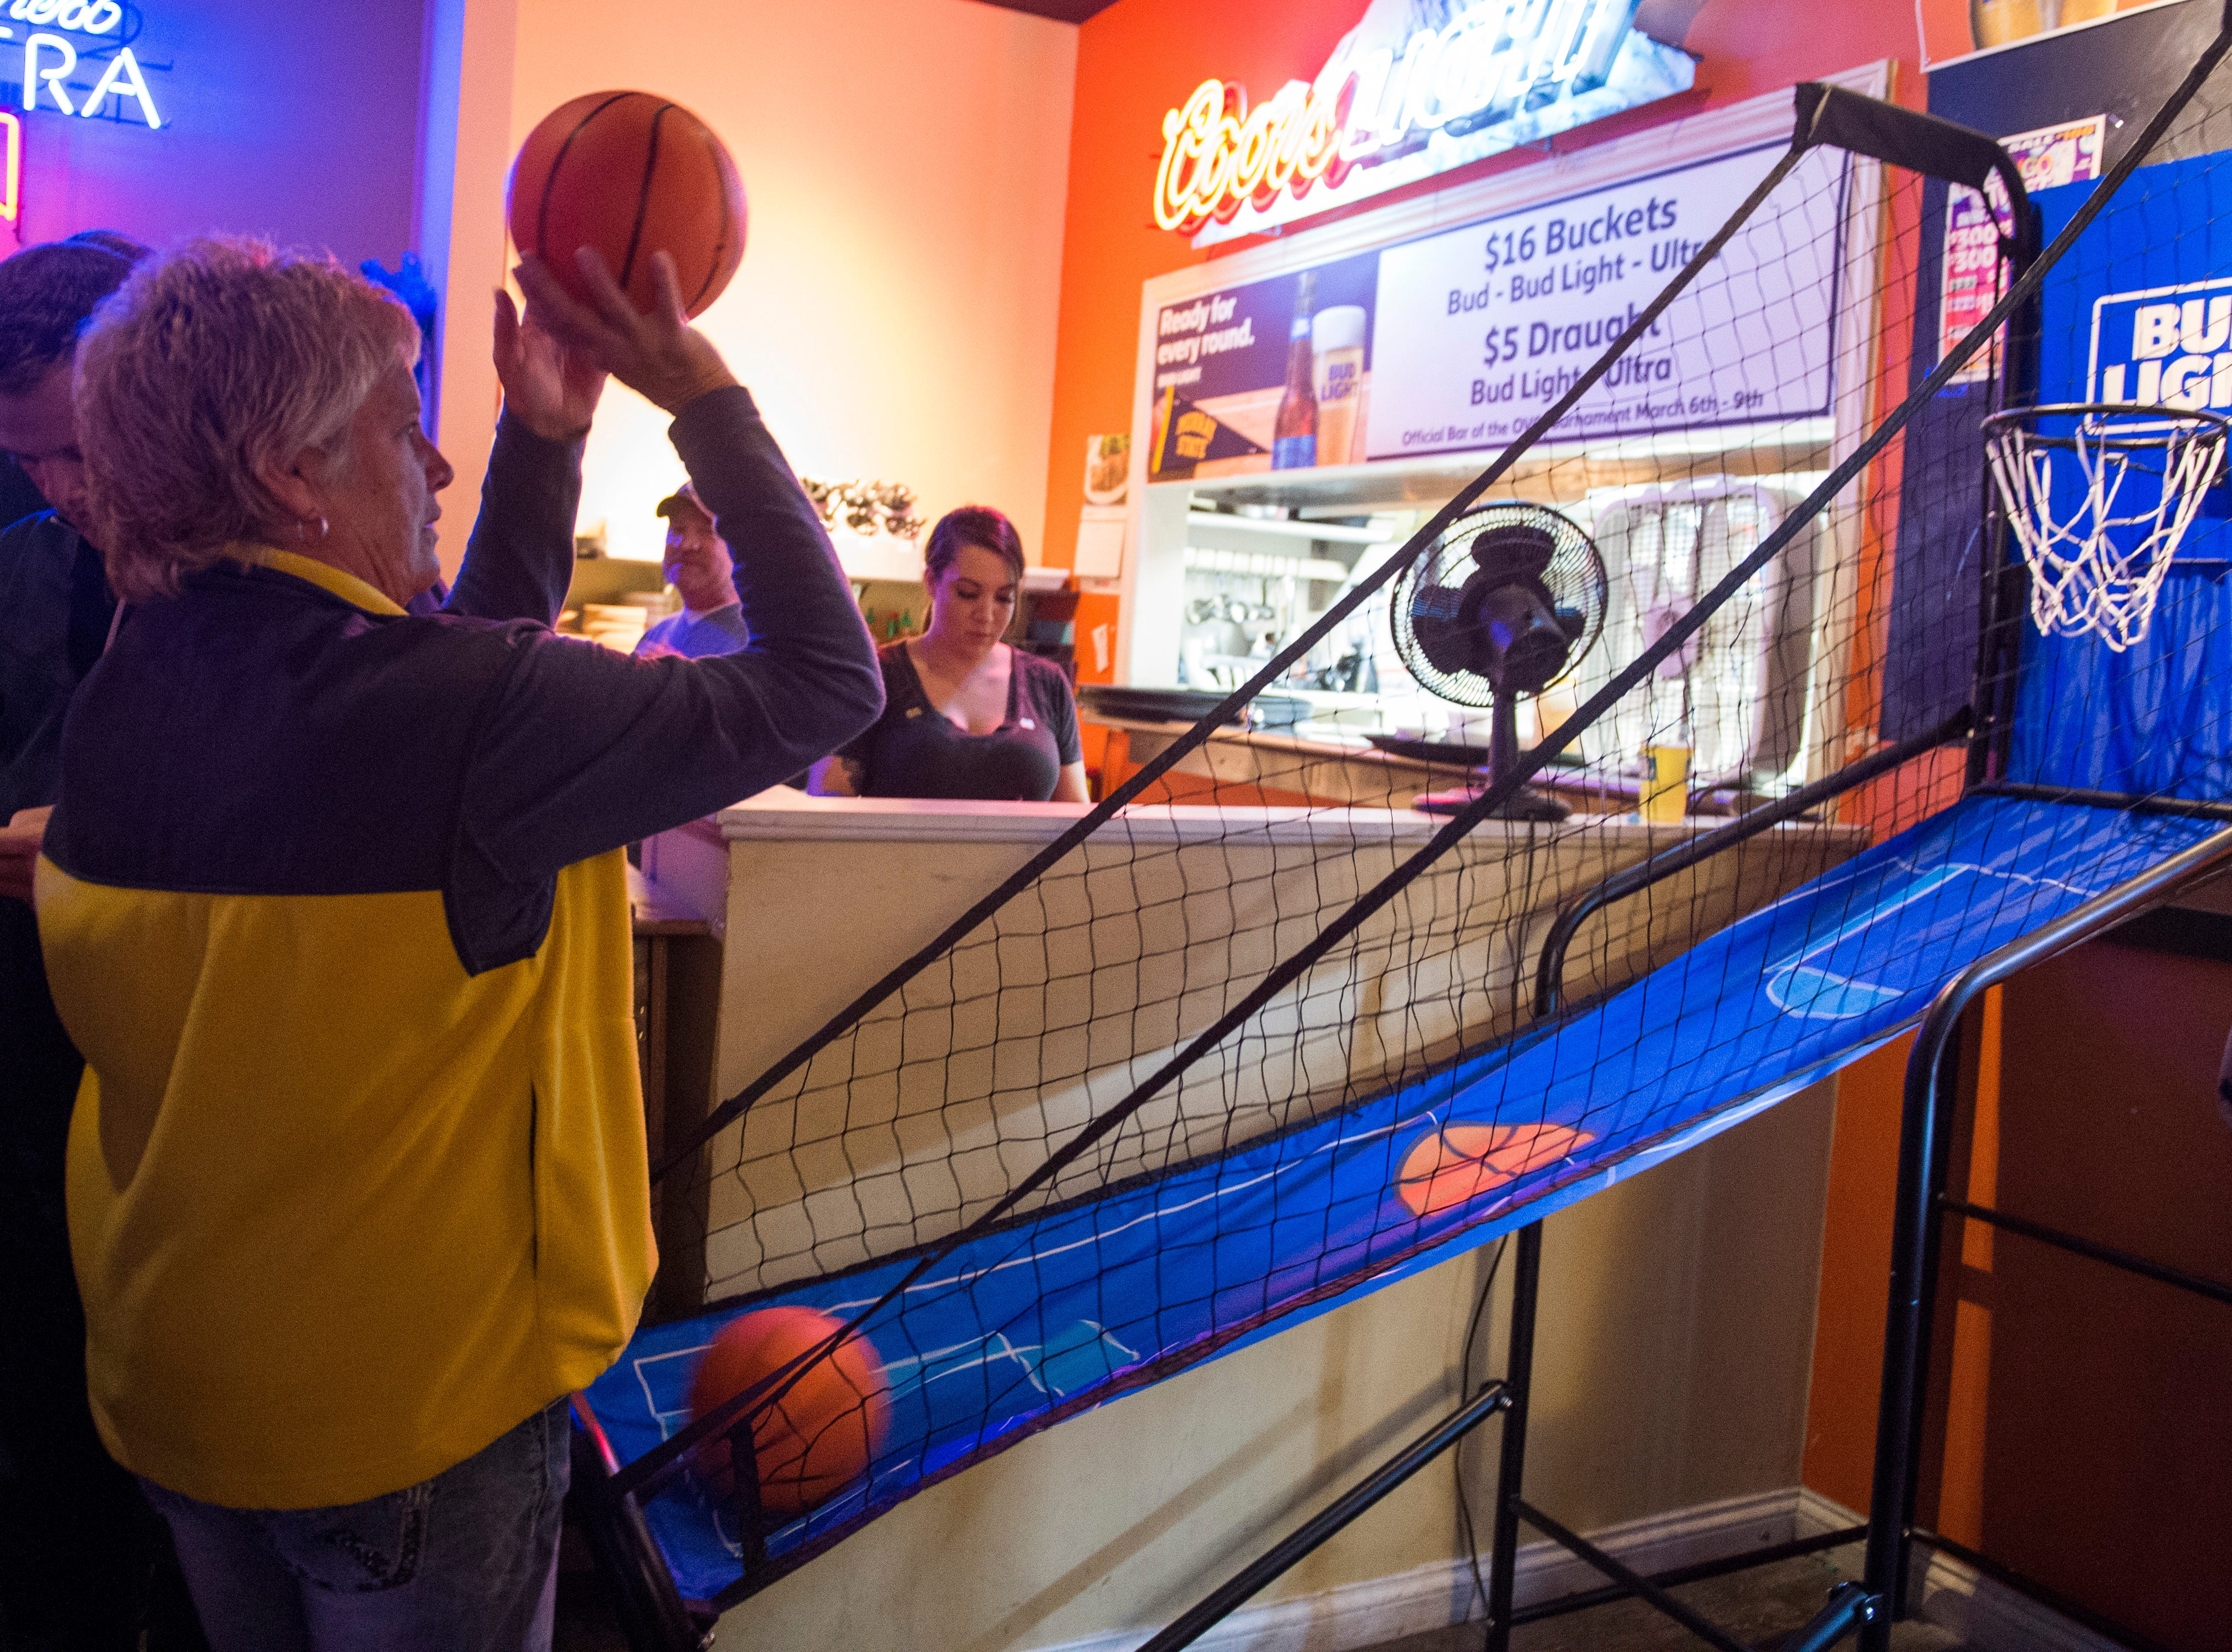 Murray State fan Cana Sheridan takes time to practice her shot at Kevin's Backstage Bar and Grill before heading to the game Friday, March 8,  2019.